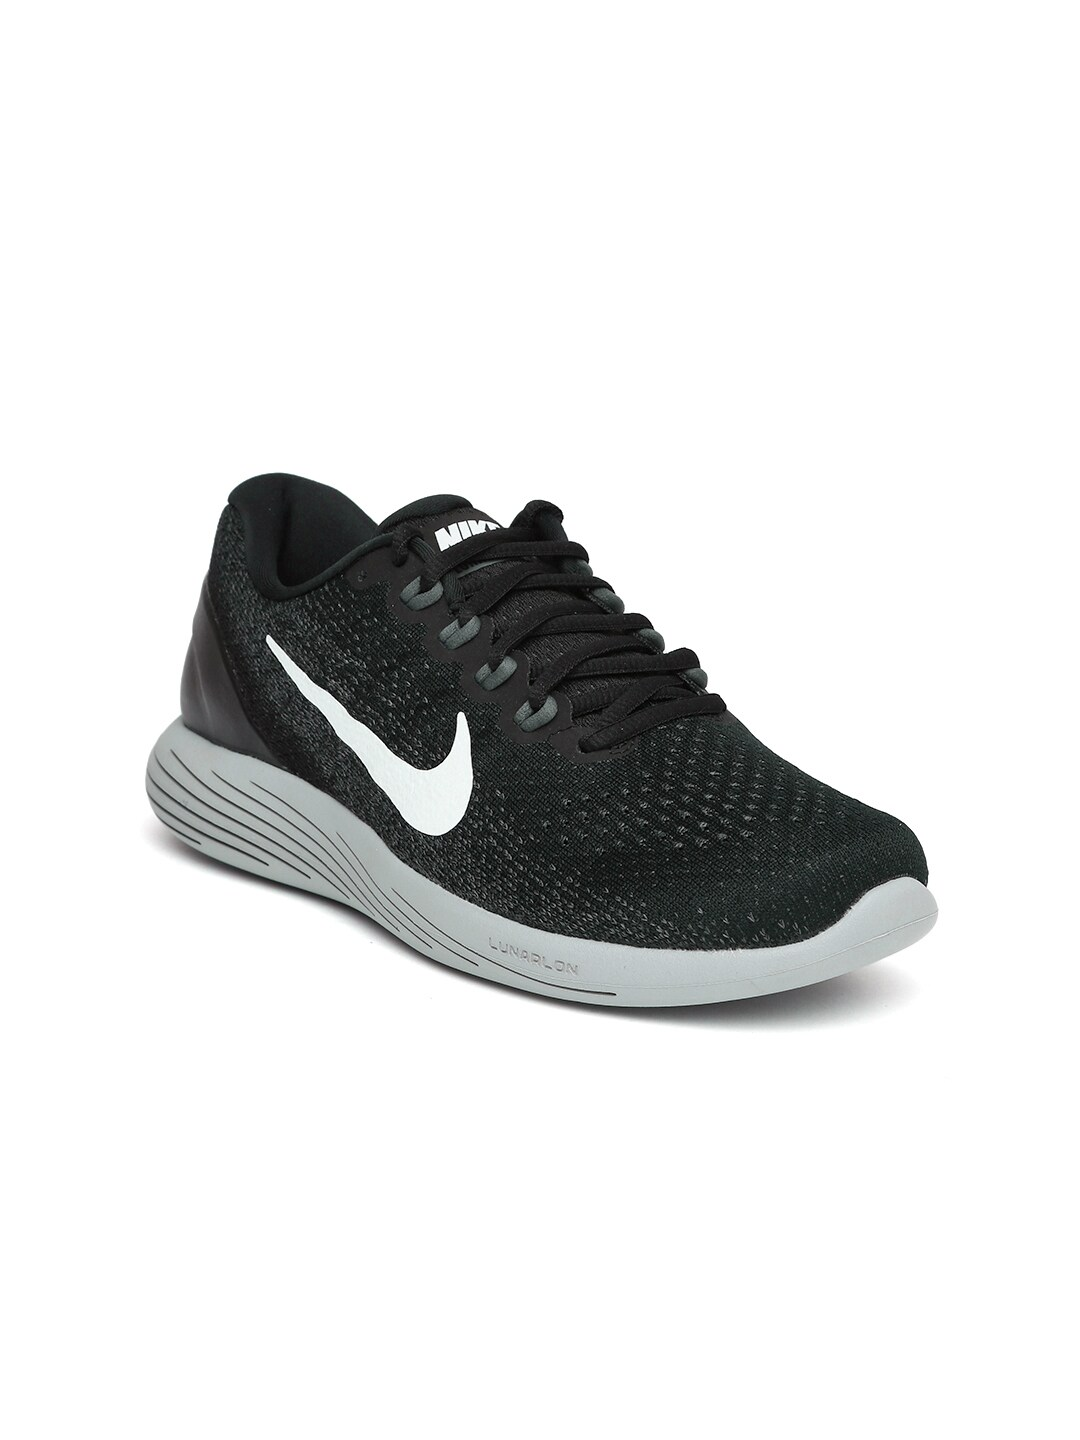 Nike Lunarglide Tracksuits Sports Shoes - Buy Nike Lunarglide Tracksuits Sports  Shoes online in India 6a08a5d06